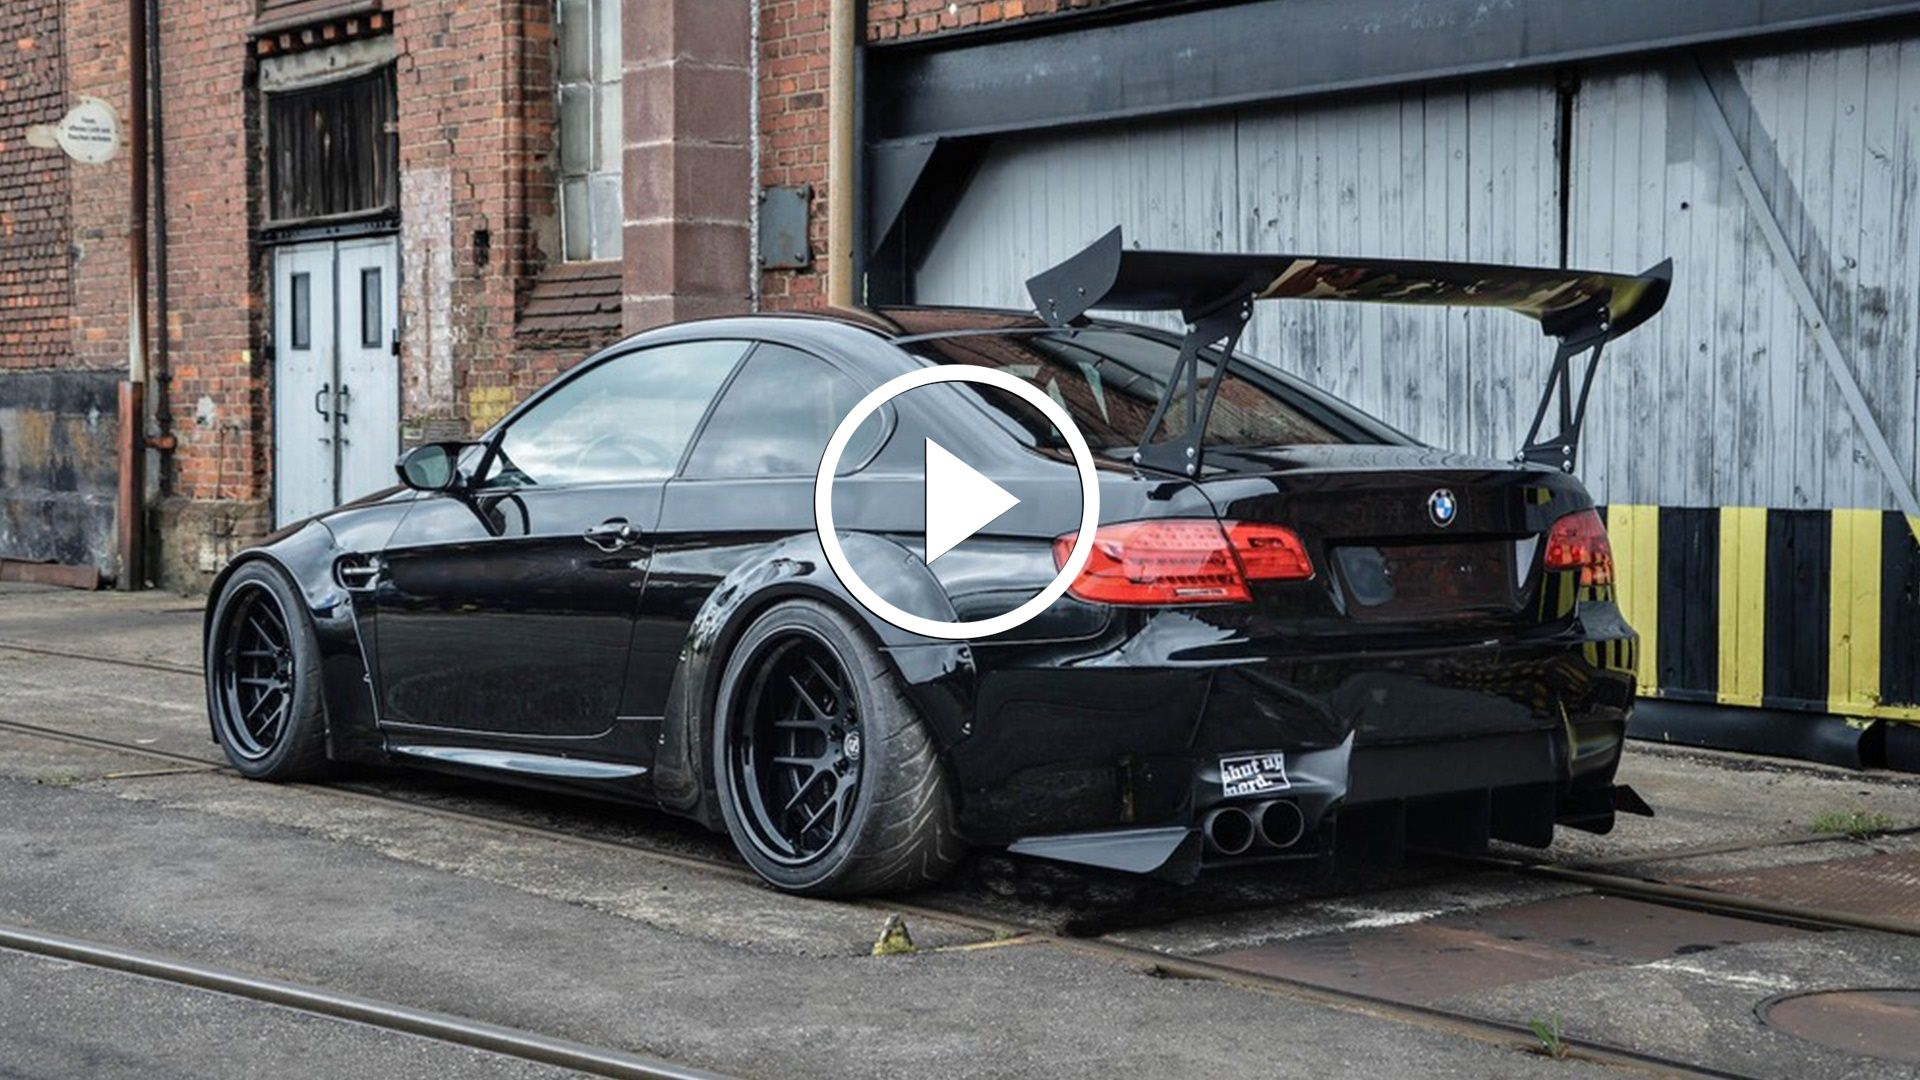 The Bmw M3 E92 Is The Perfect Car For The Perfect Tuning As We